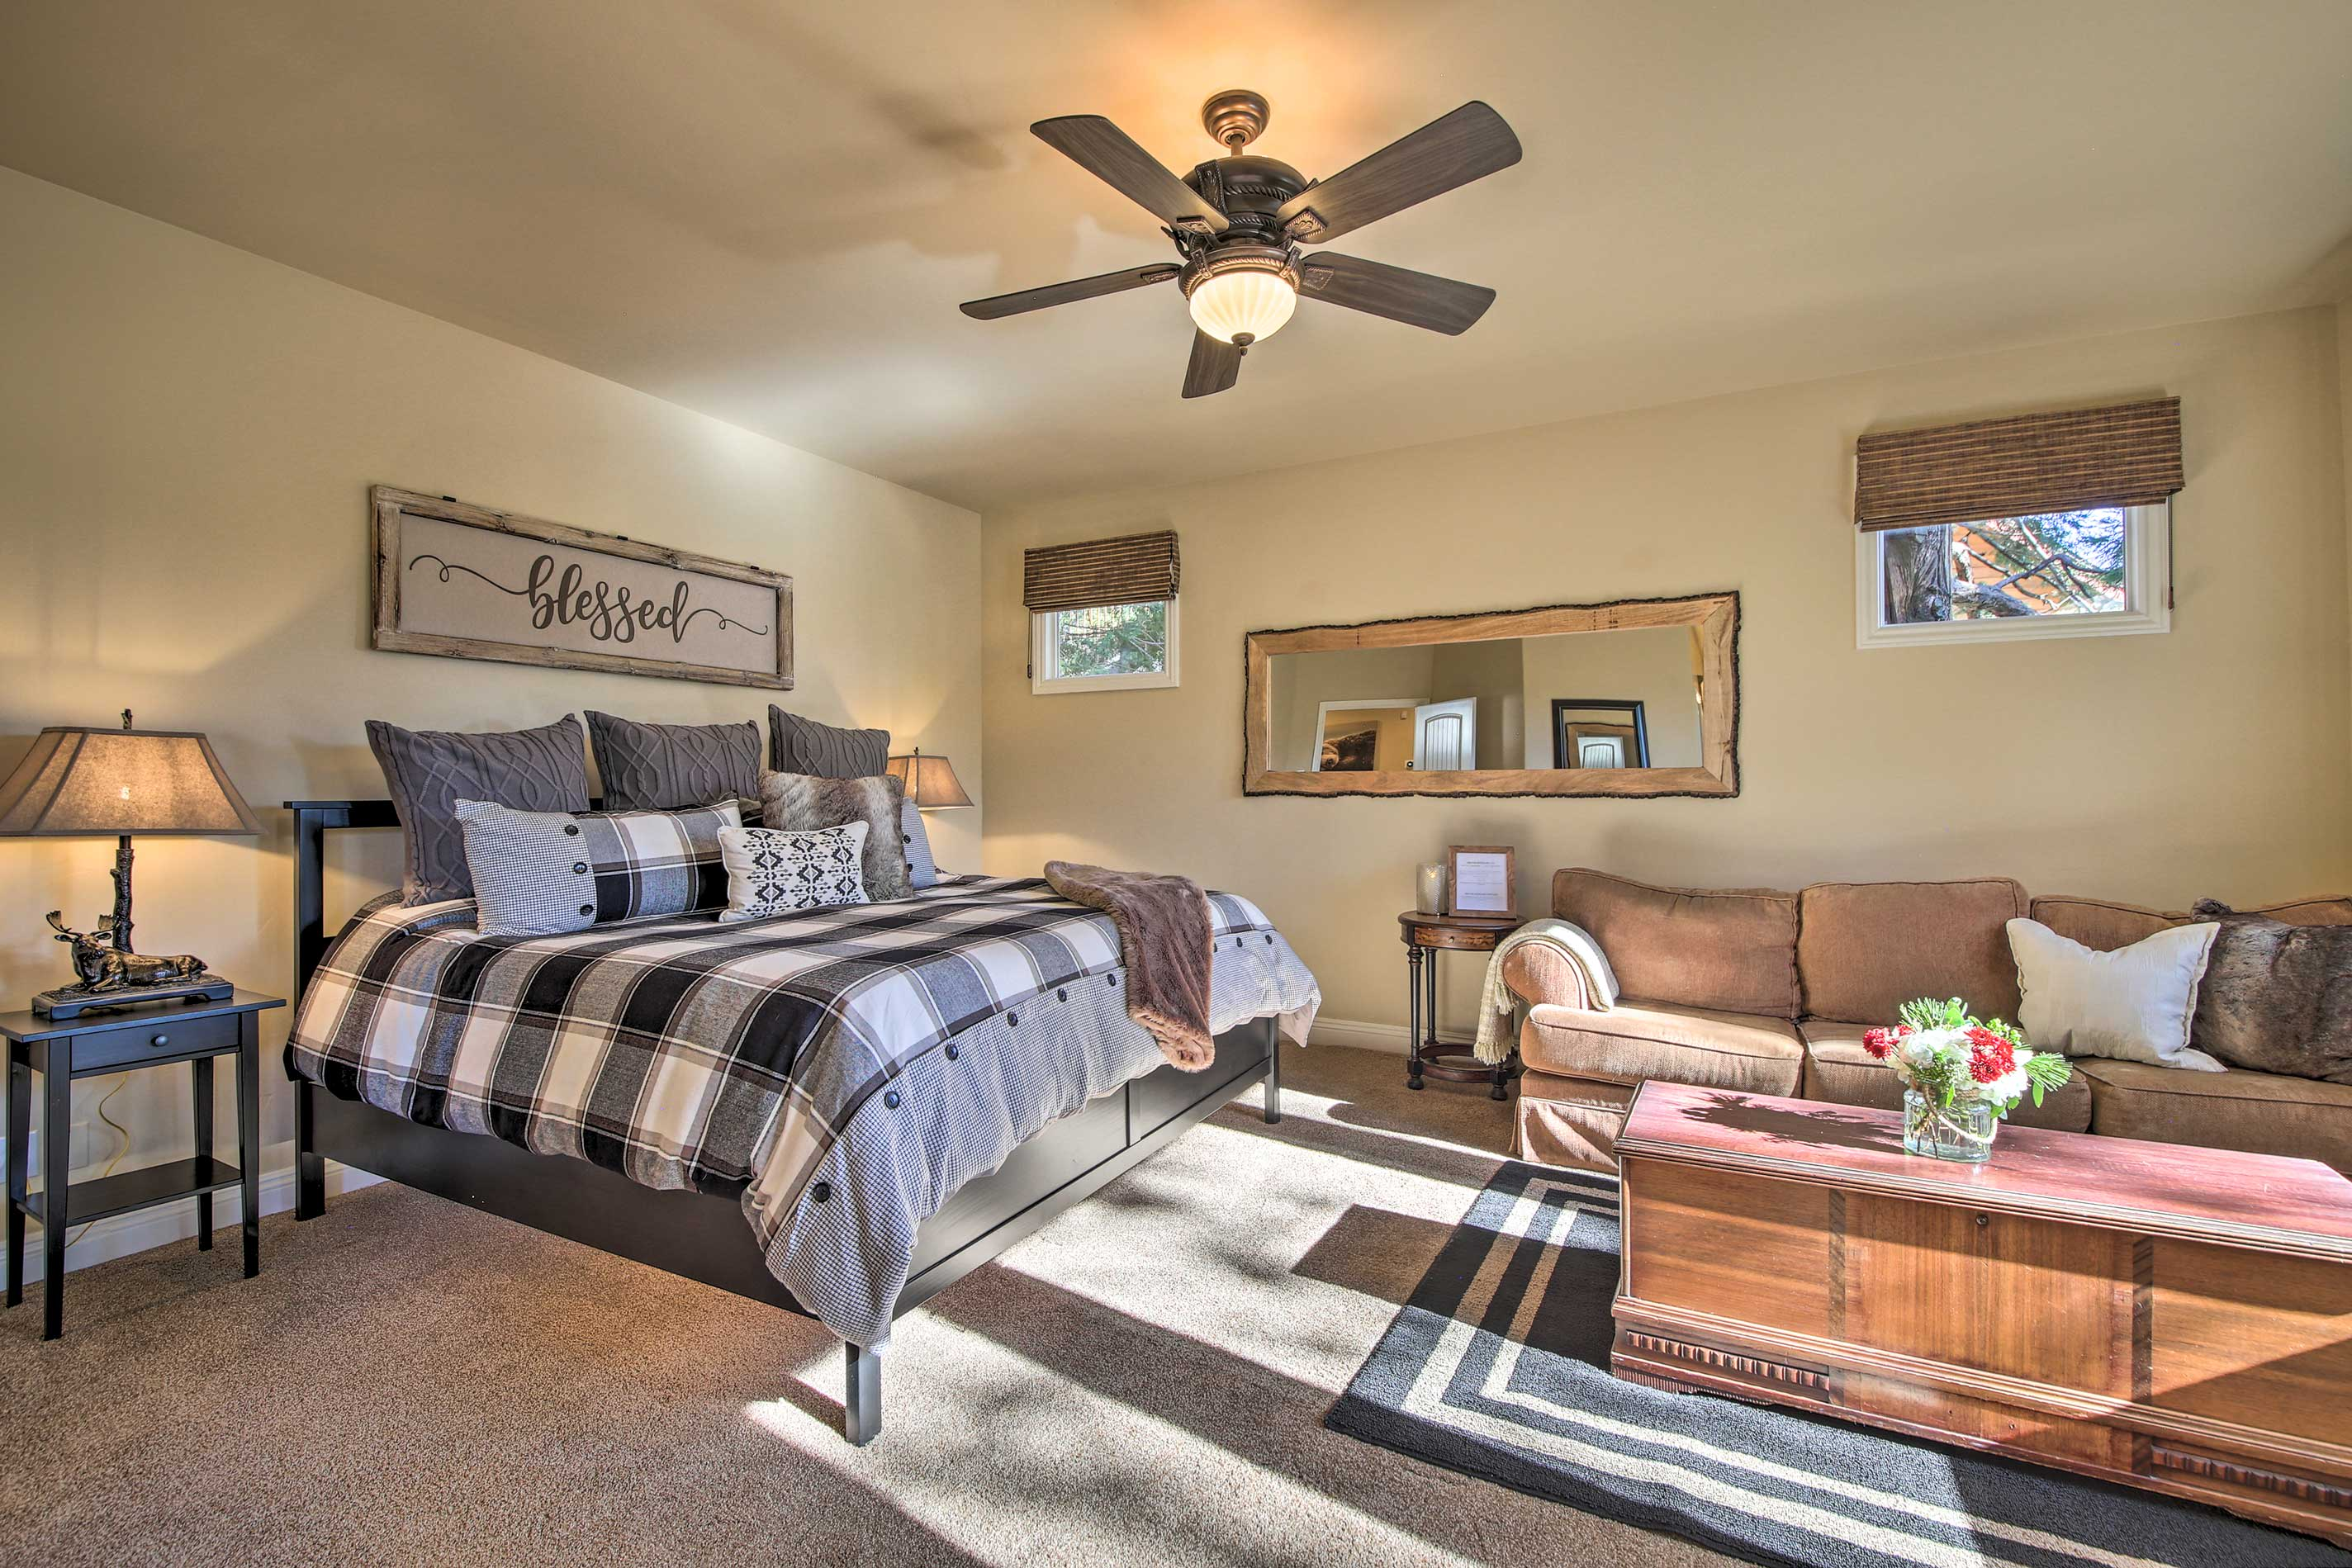 Claim the fully-furnished master bedroom as your own.